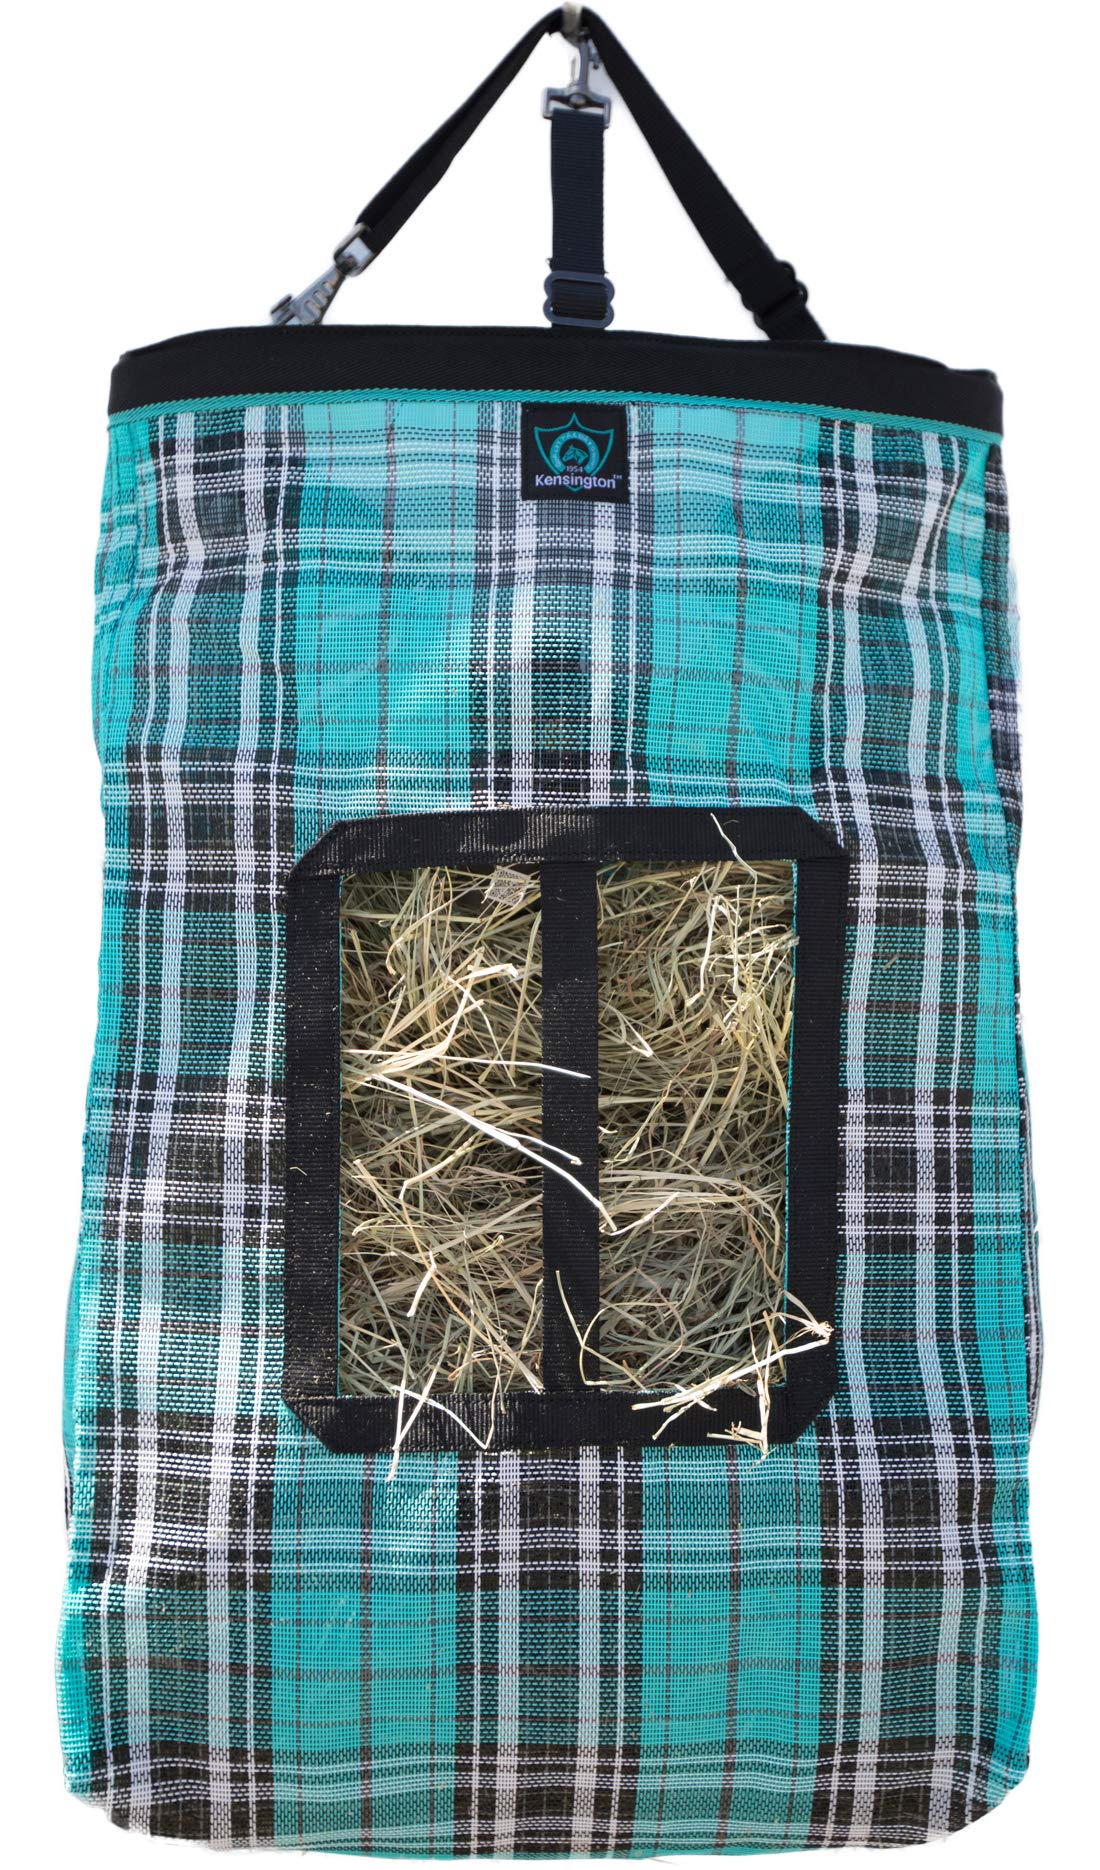 Kensington Hay Bag with Wire Rim - Sturdy Plastic Band Makes Loading Hay a Breeze - Holds Up to 2 Flake's